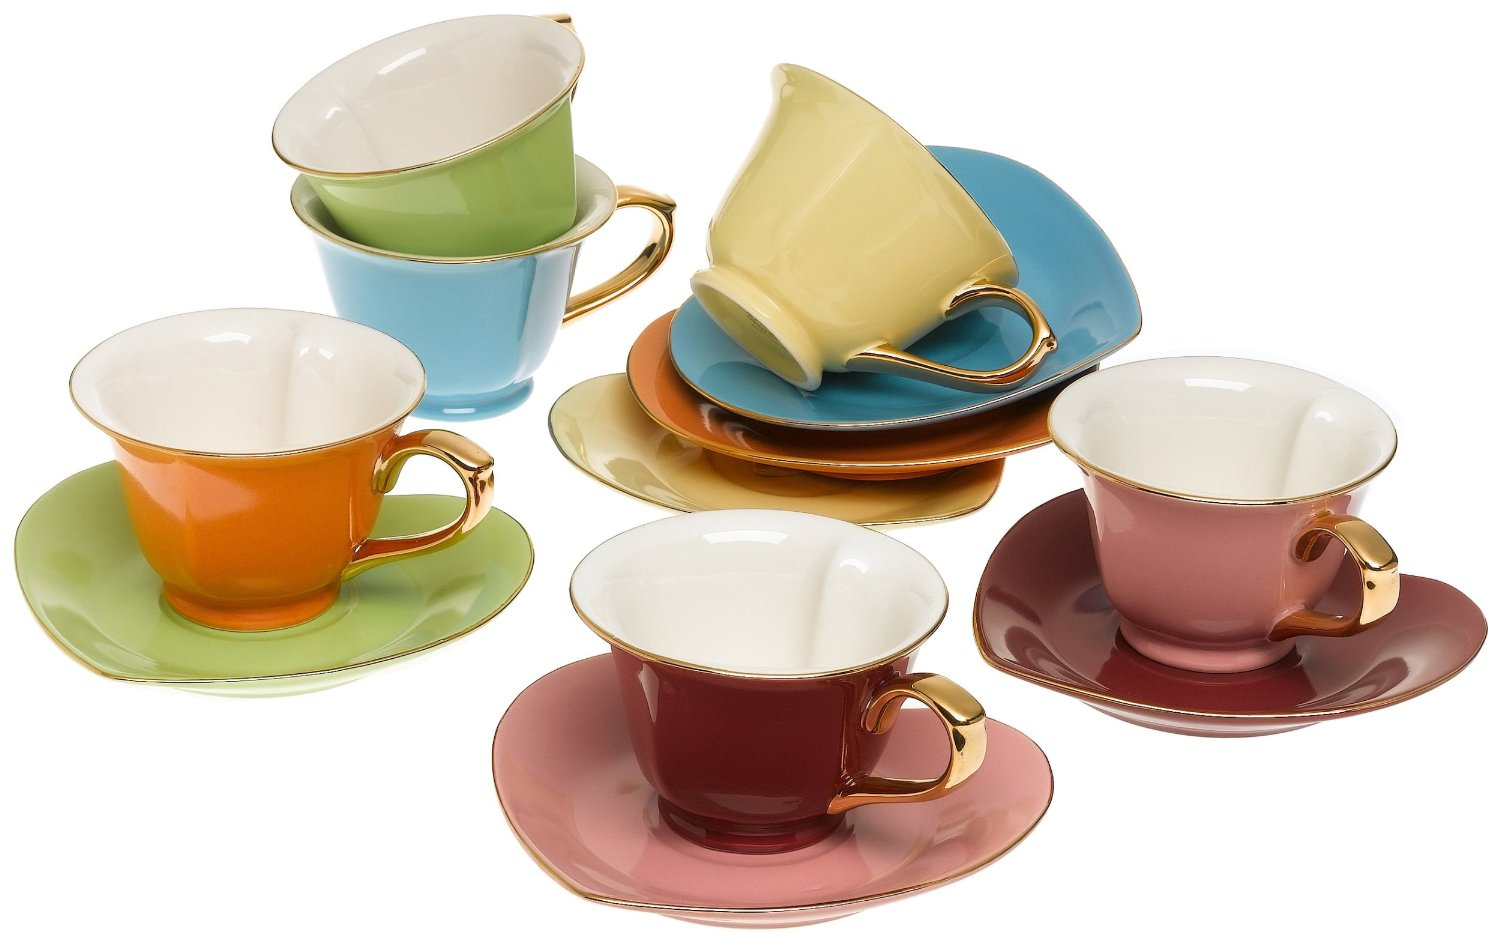 Classic Coffee & Tea Cups & Saucers, Set of 6, Assorted Colors, Inside Out Heart Design